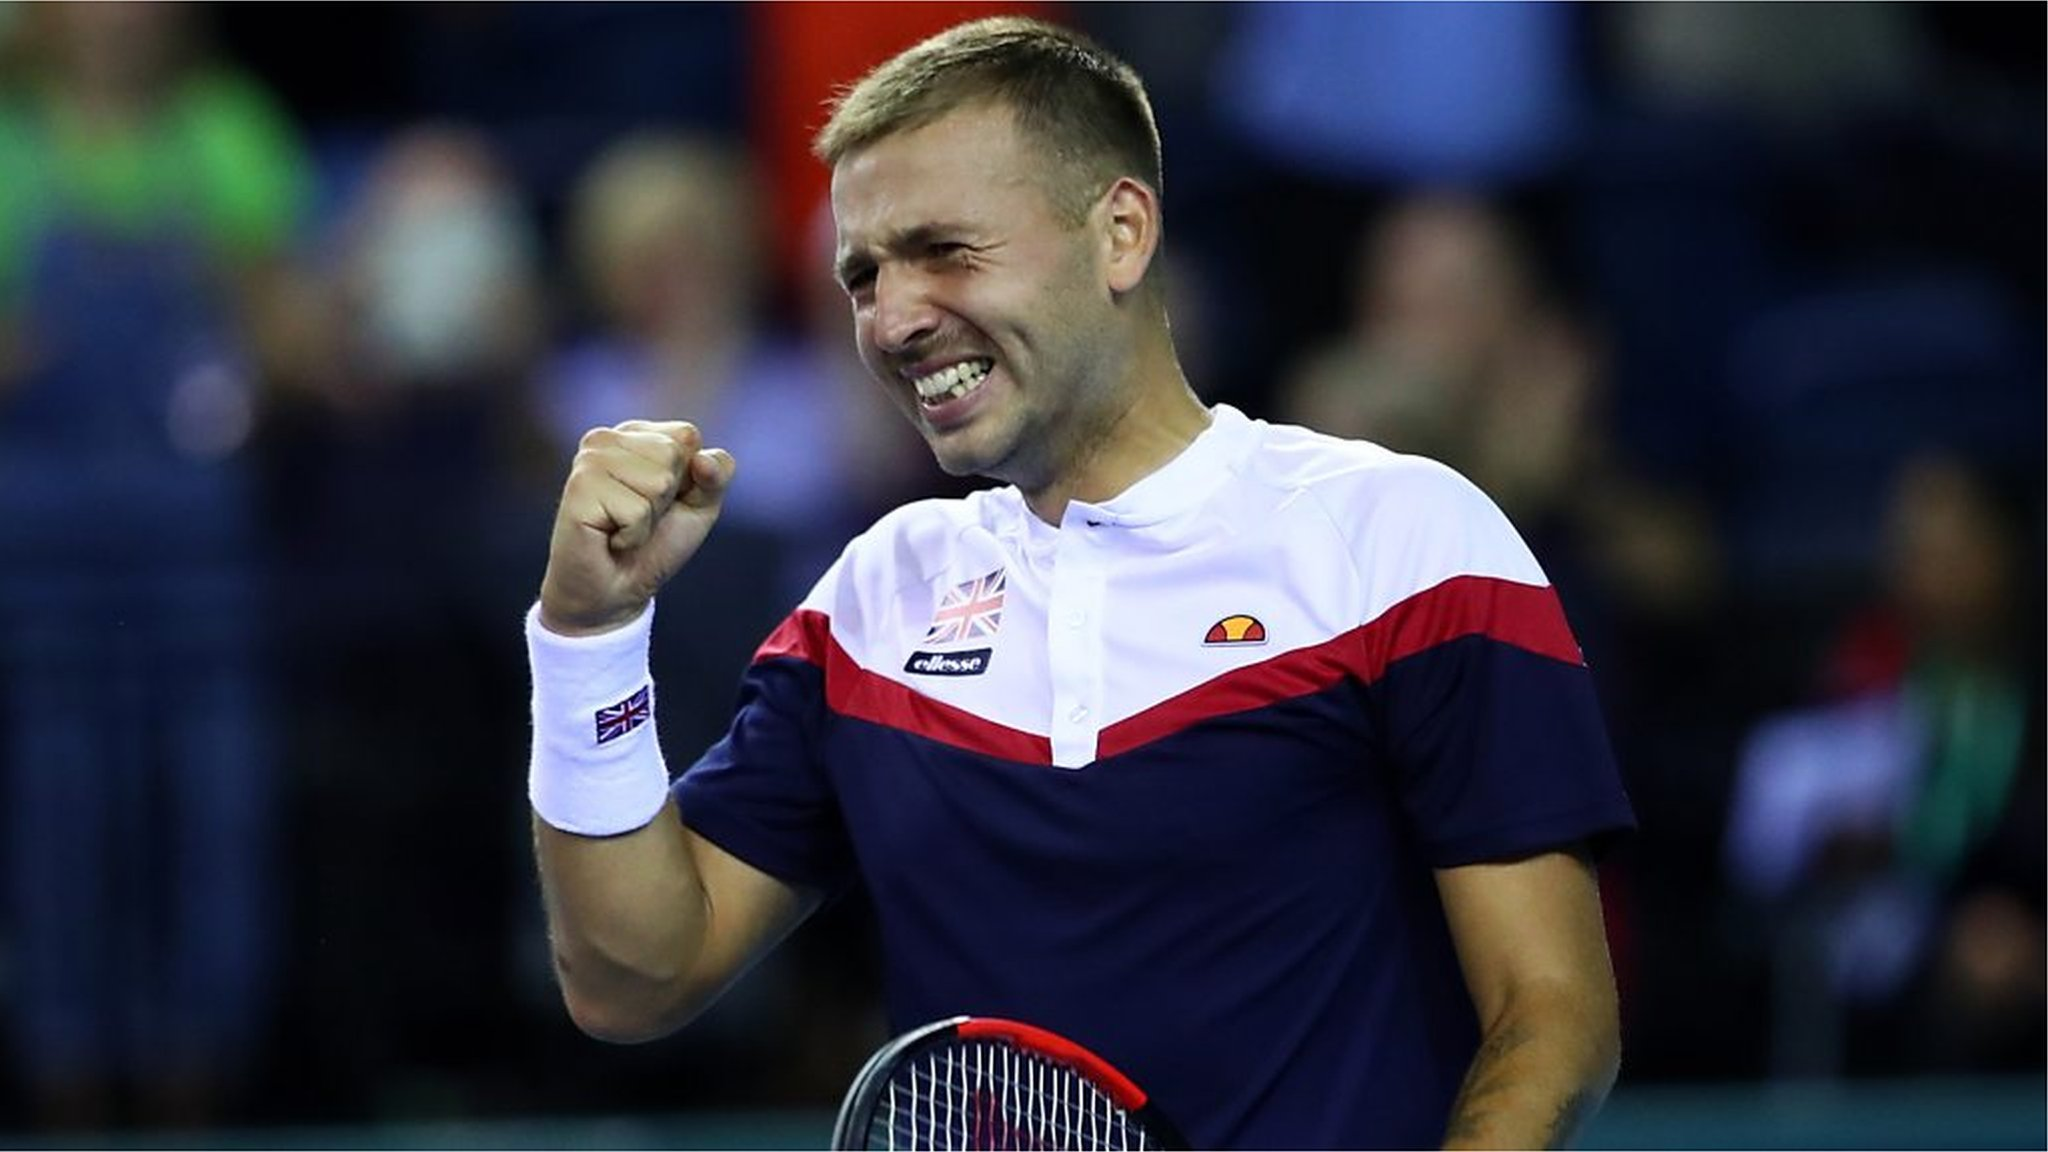 Davis Cup play-off GB v Uzbekistan - Best shots as Dan Evans beats Denis Istomin in epic match